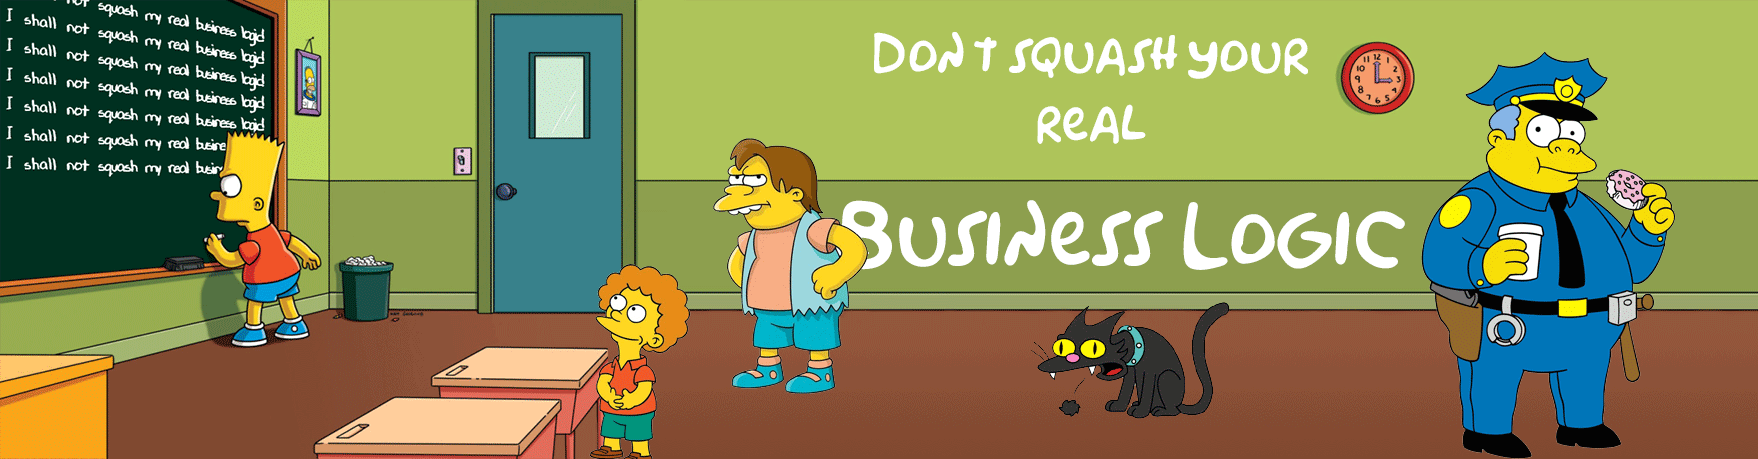 Don't squash your business logic